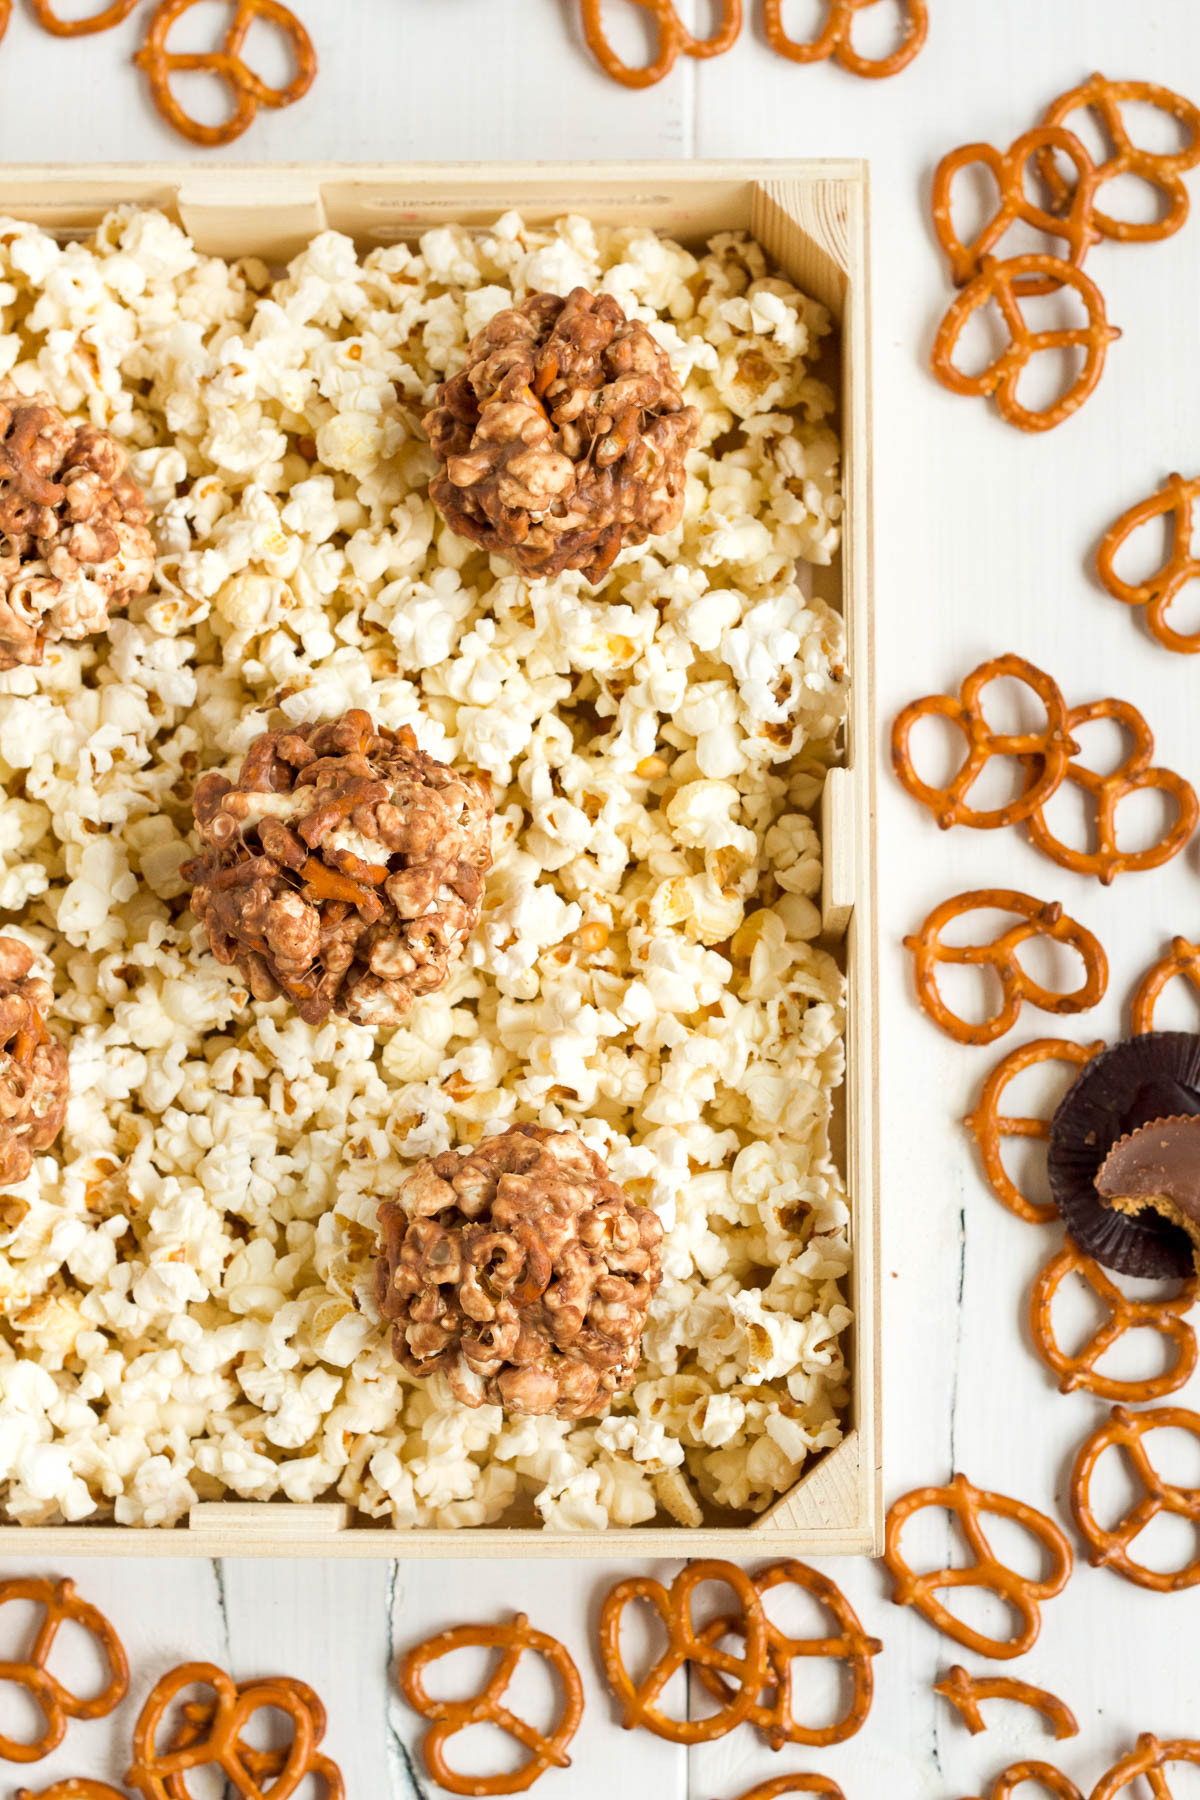 These yummy peanut butter pretzel popcorn balls will be irresistible to kids and adults alike!